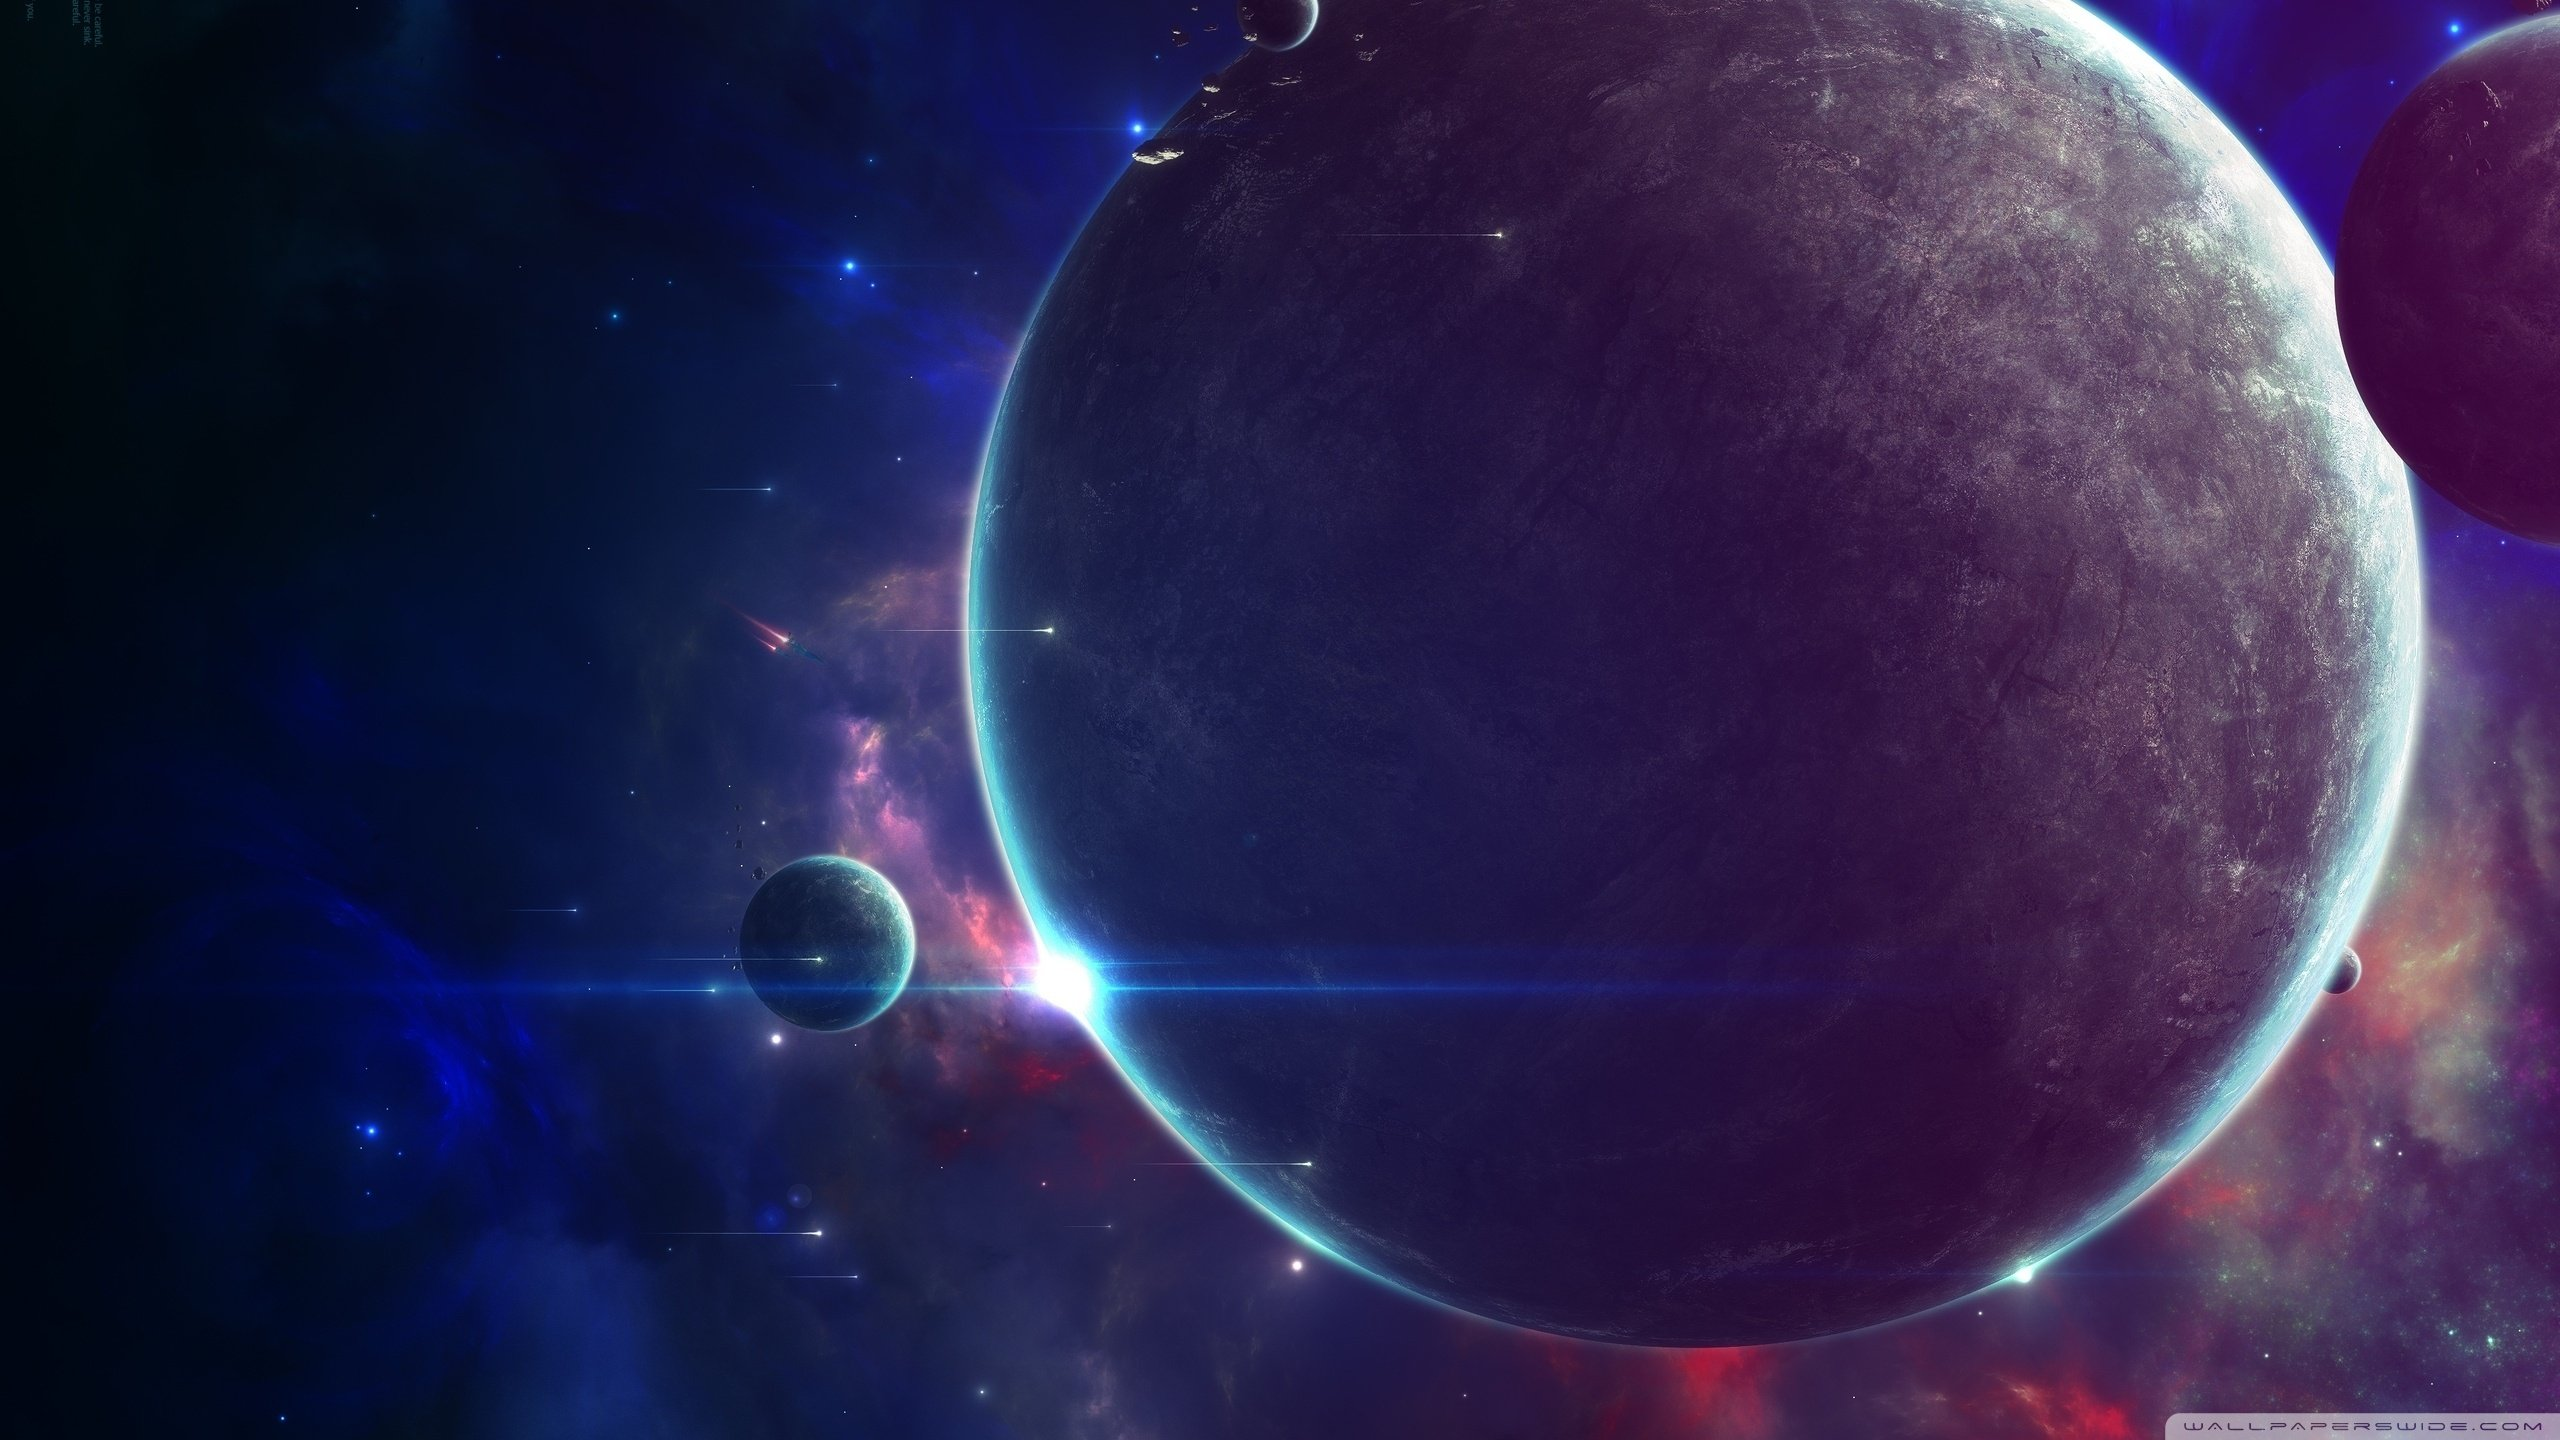 art wallpaper space skulls wallpapers close planets 2560x1440